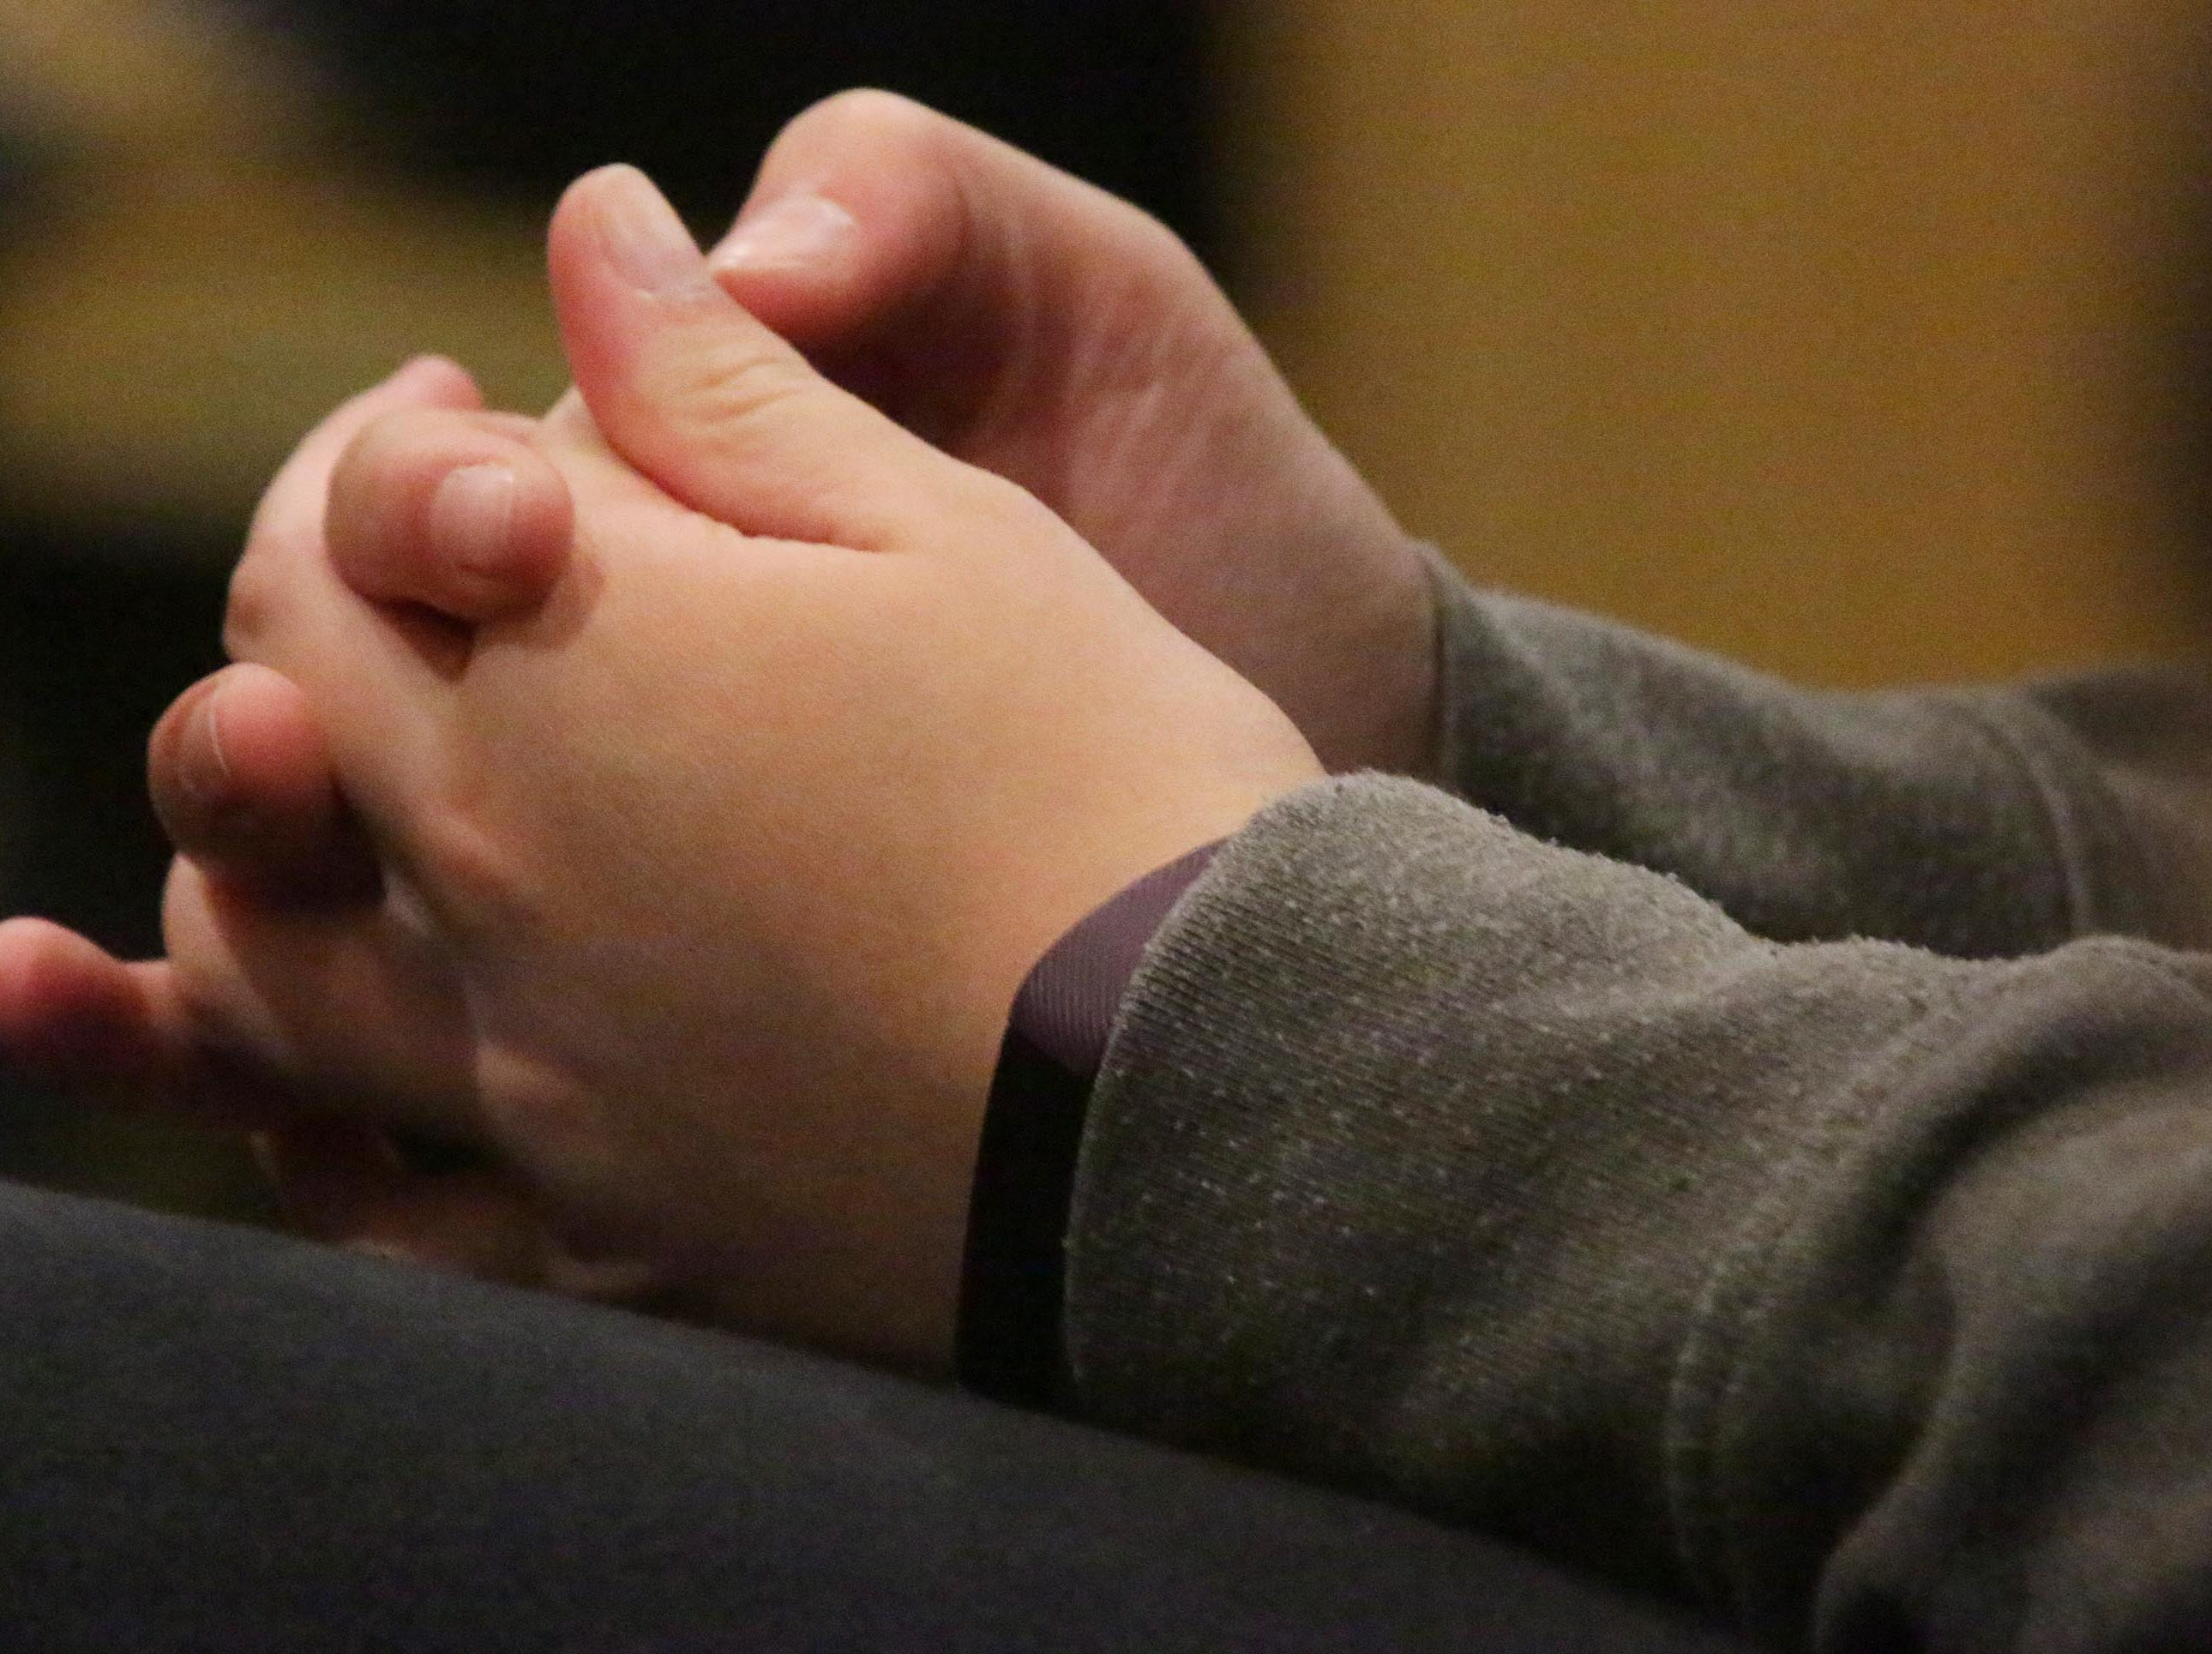 A young person's hands are clasped in prayer during the National Day of Prayer, Thursday, May 2, 2019, at Fountain Park Church, in Sheboygan, Wis.